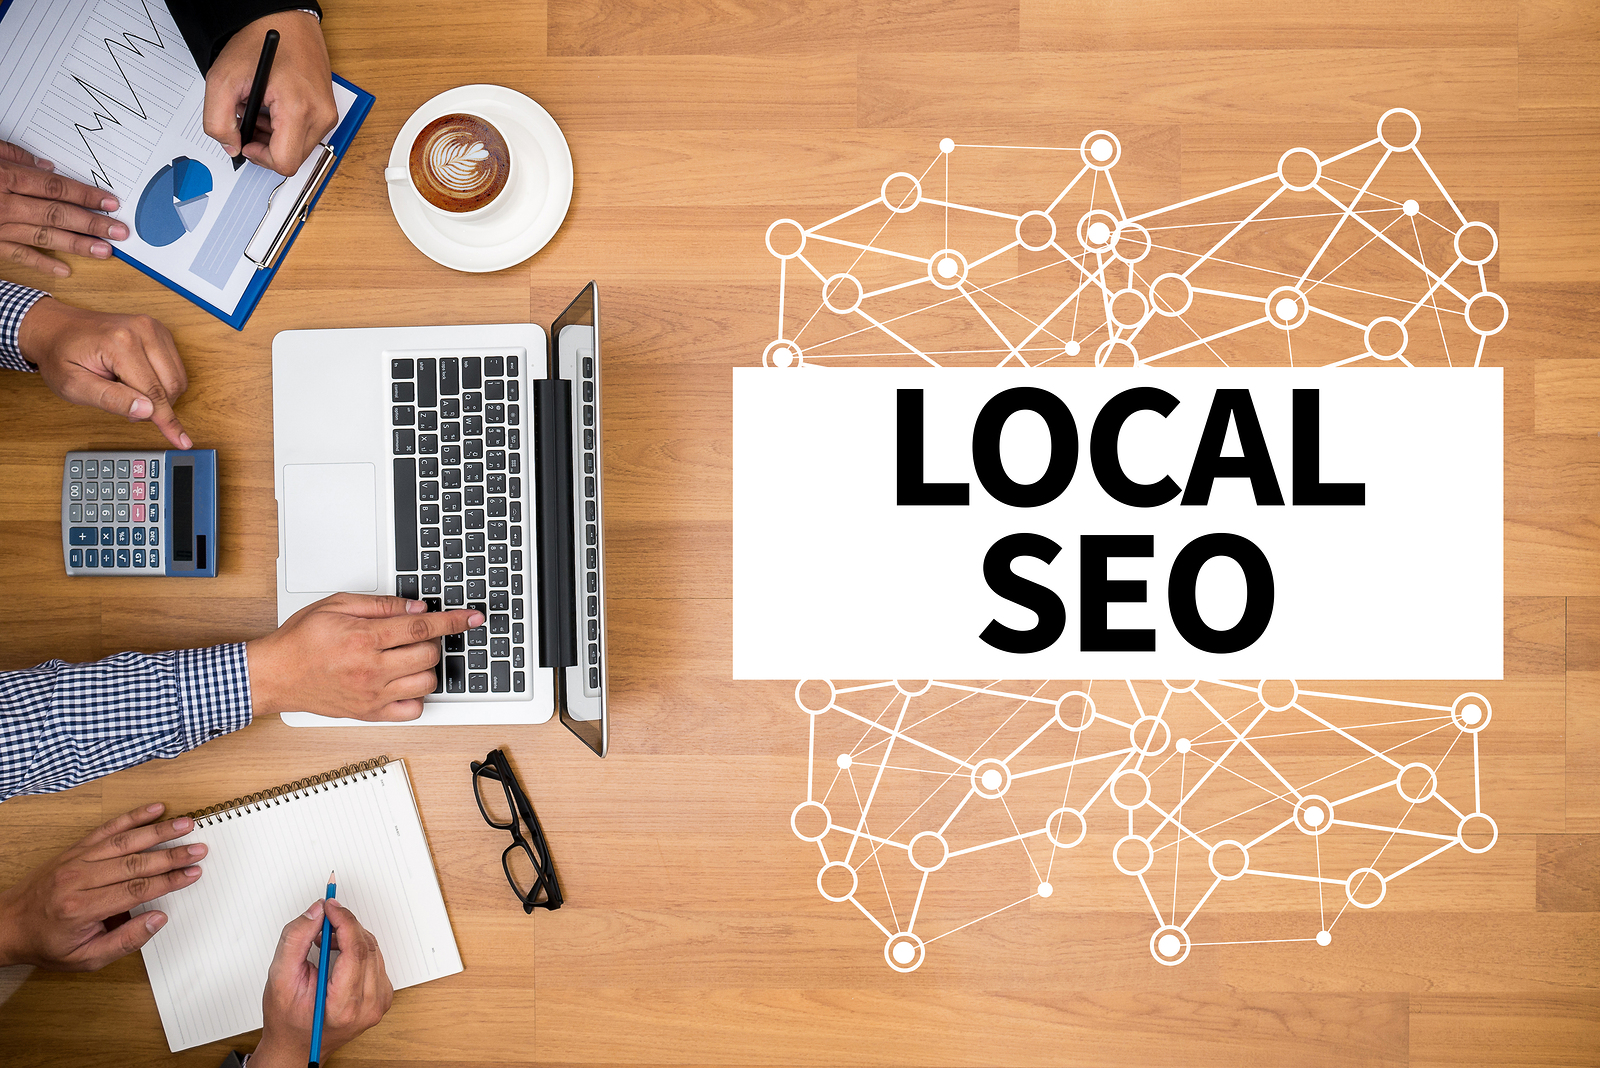 How Local SEO Works?